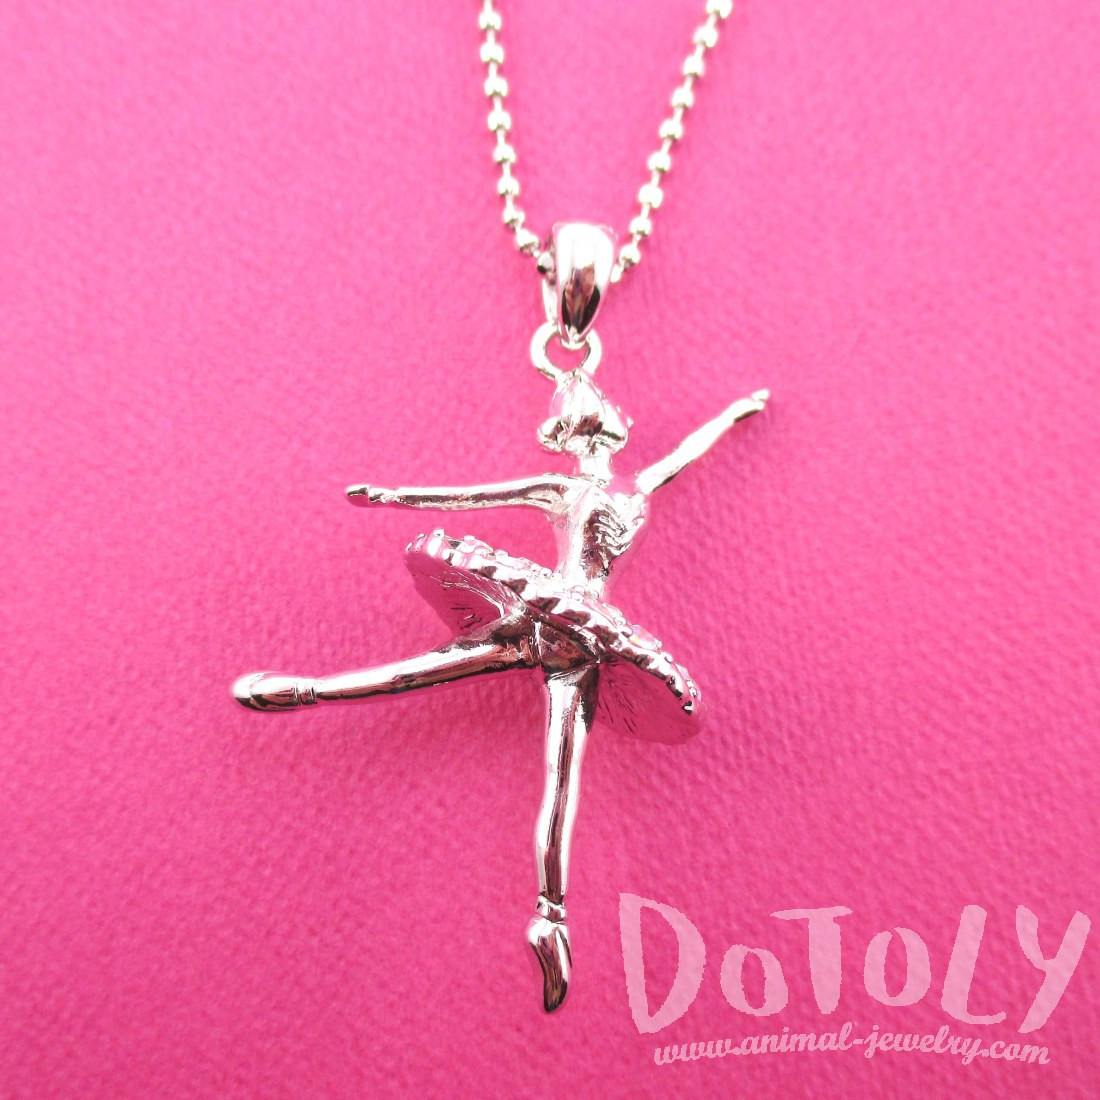 3D Ballet Ballerina Dancer Themed Necklace in Silver